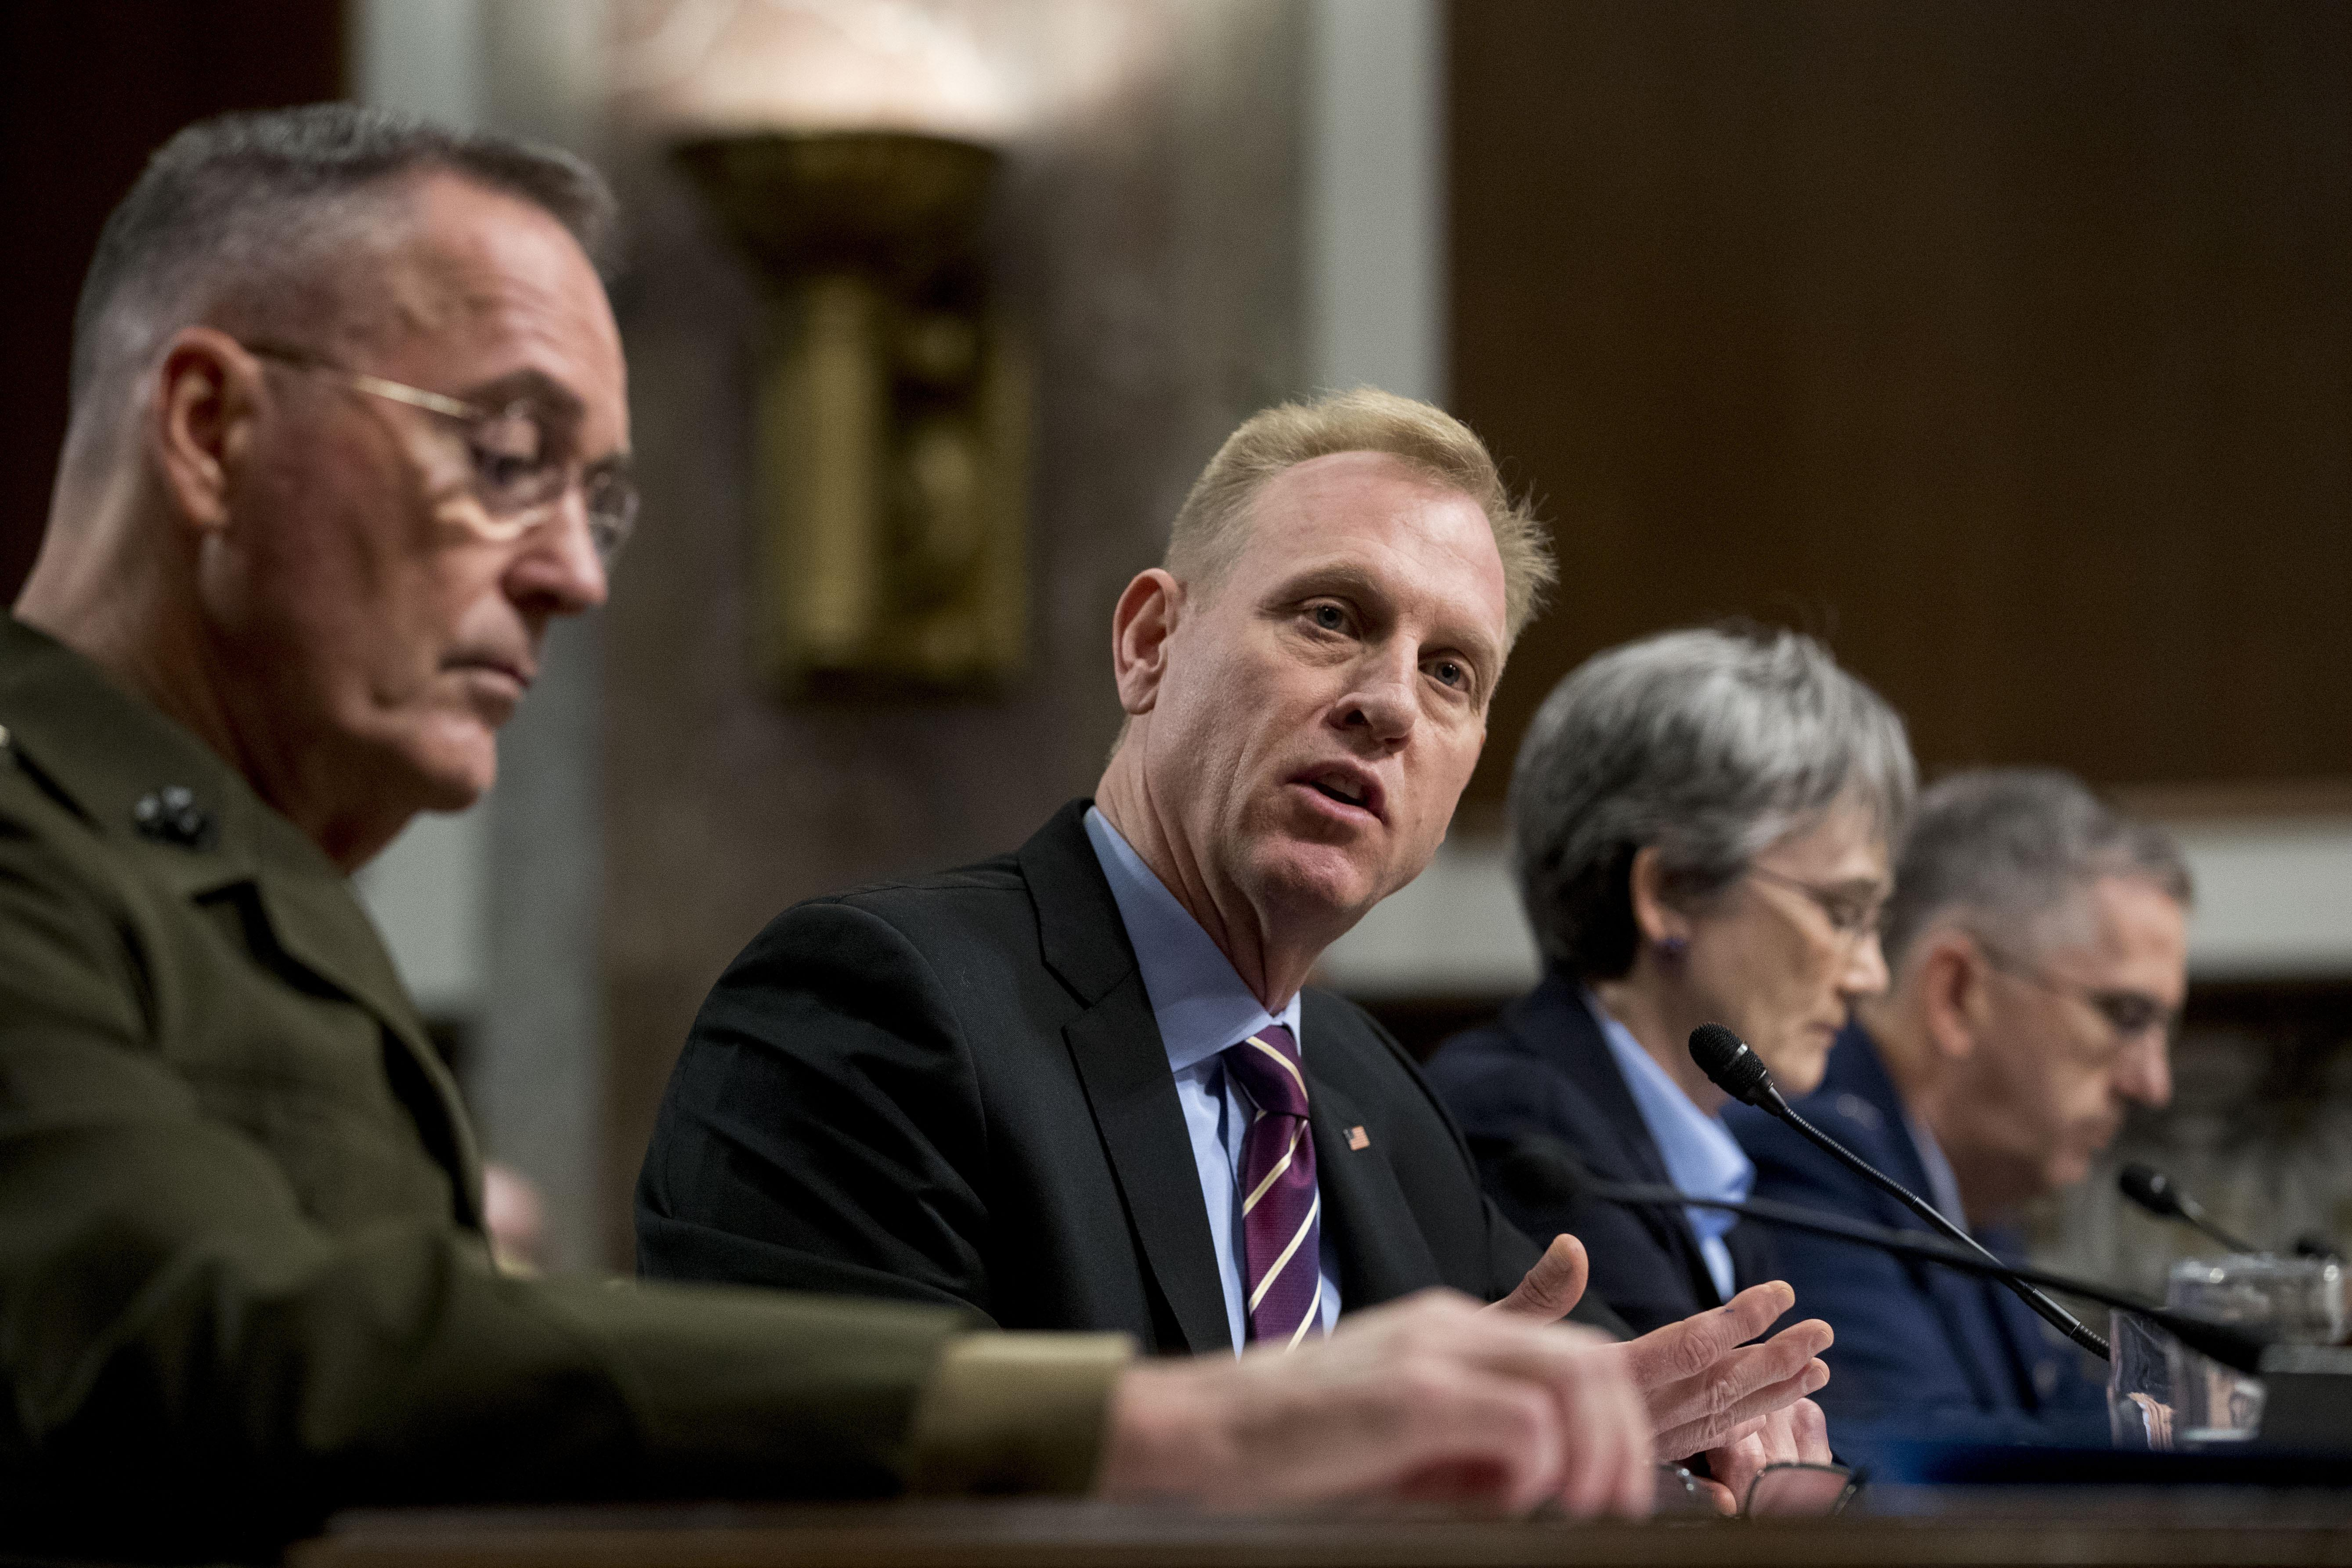 Space Force plans meet with skepticism, confusion on Hill